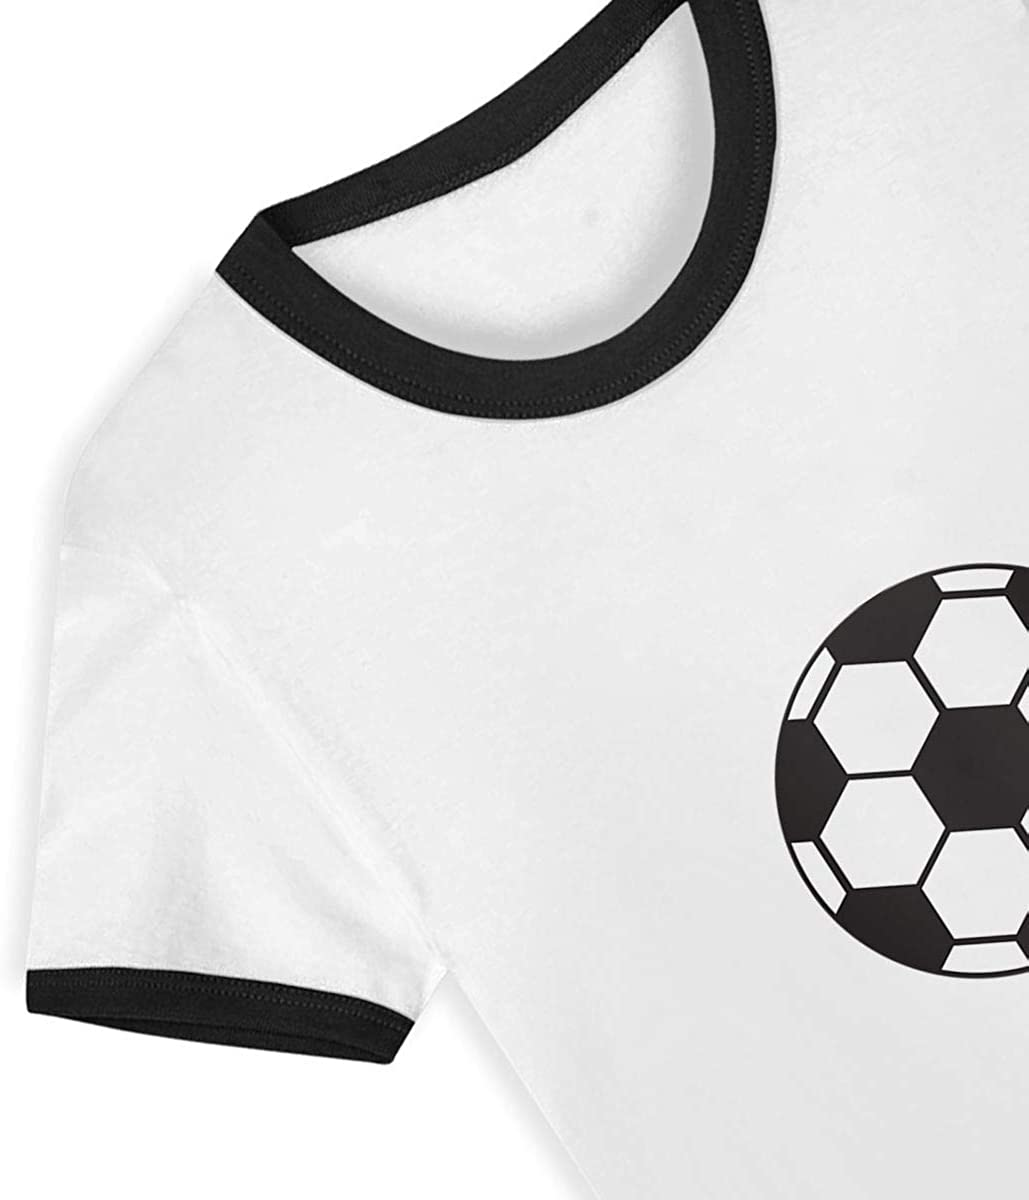 LX FootballCasual Childrens Printing Logo Round Collar Short Sleeve T-Shirt Cotton Tee for Kids